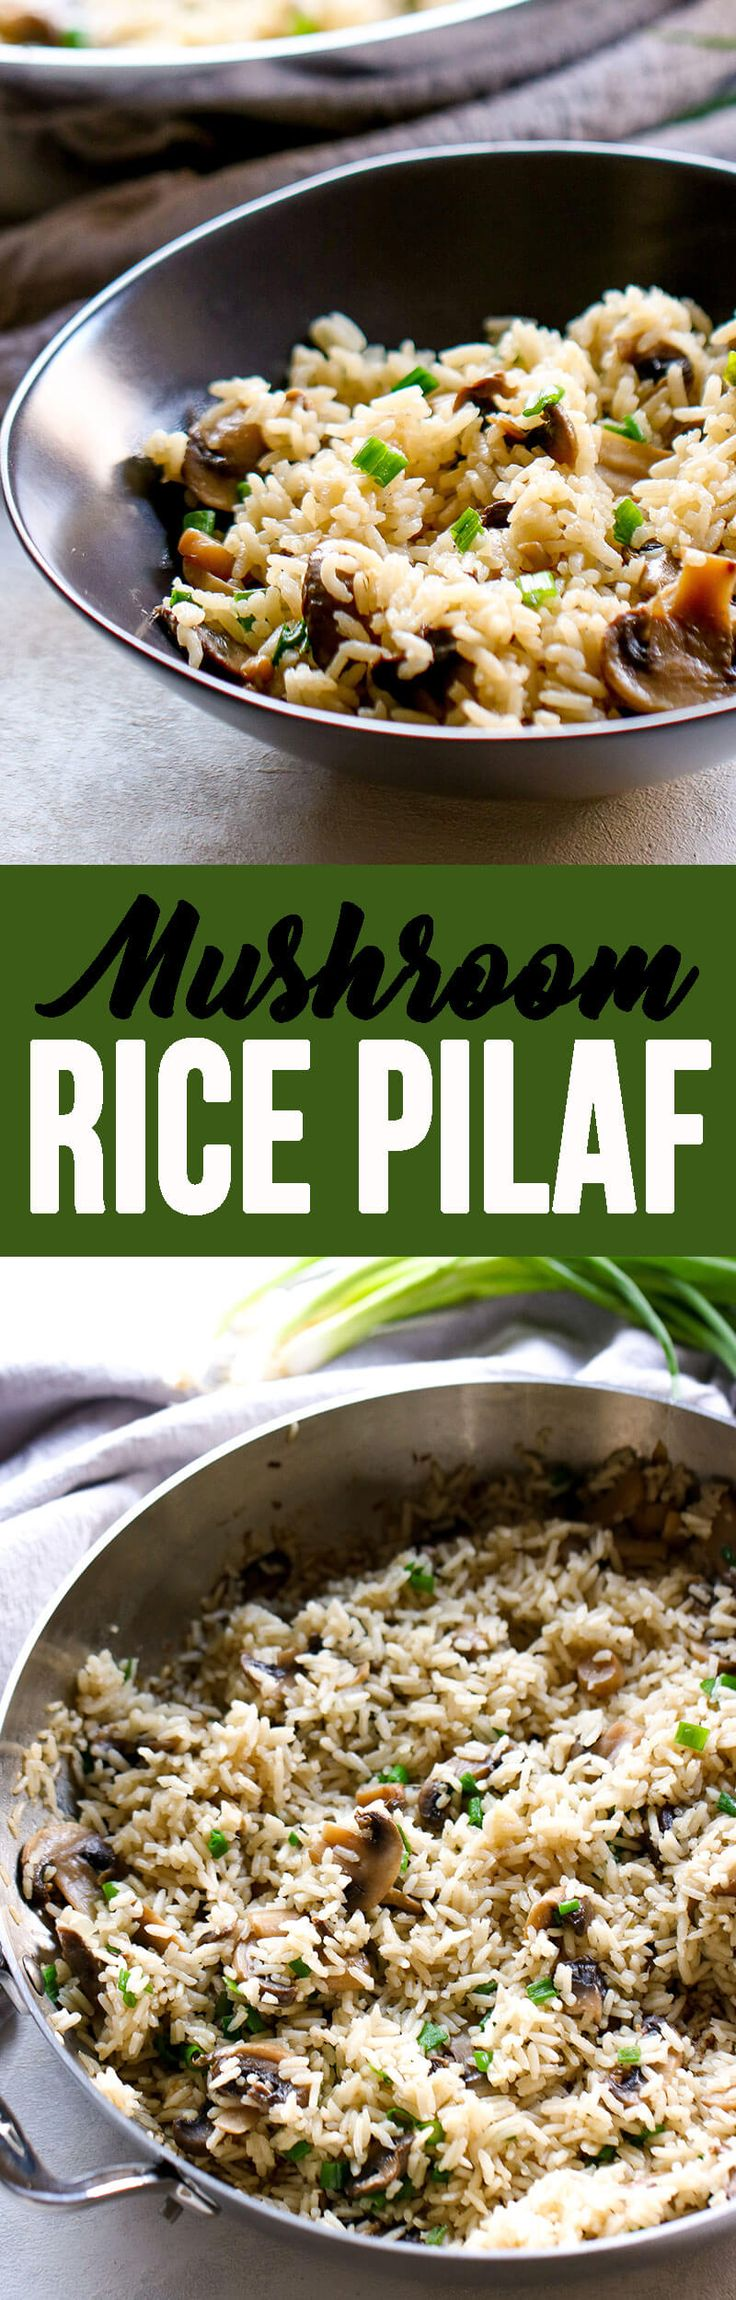 This Mushroom Rice Pilaf is the perfect earthy addition to your dinner table! It's easy to throw together and full of flavor.